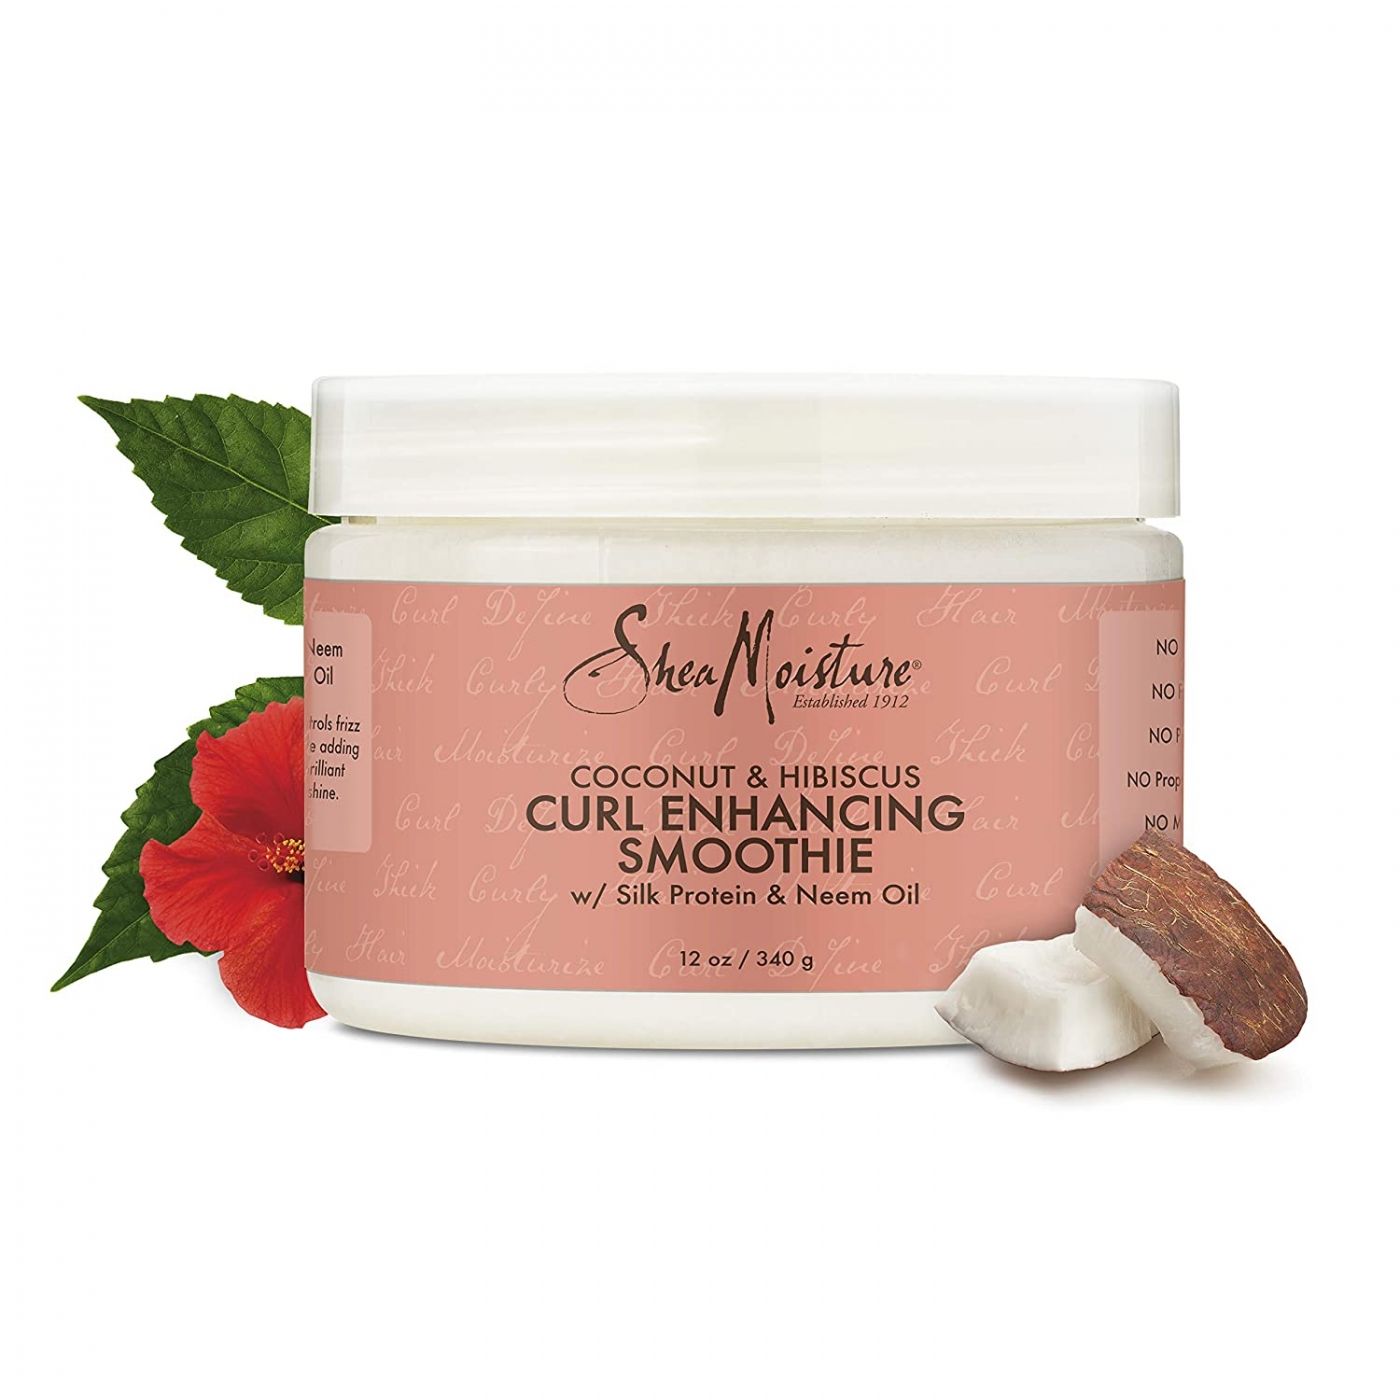 SheaMoisture Cream – Get a smooth, curl-defining, and frizz-free hair!